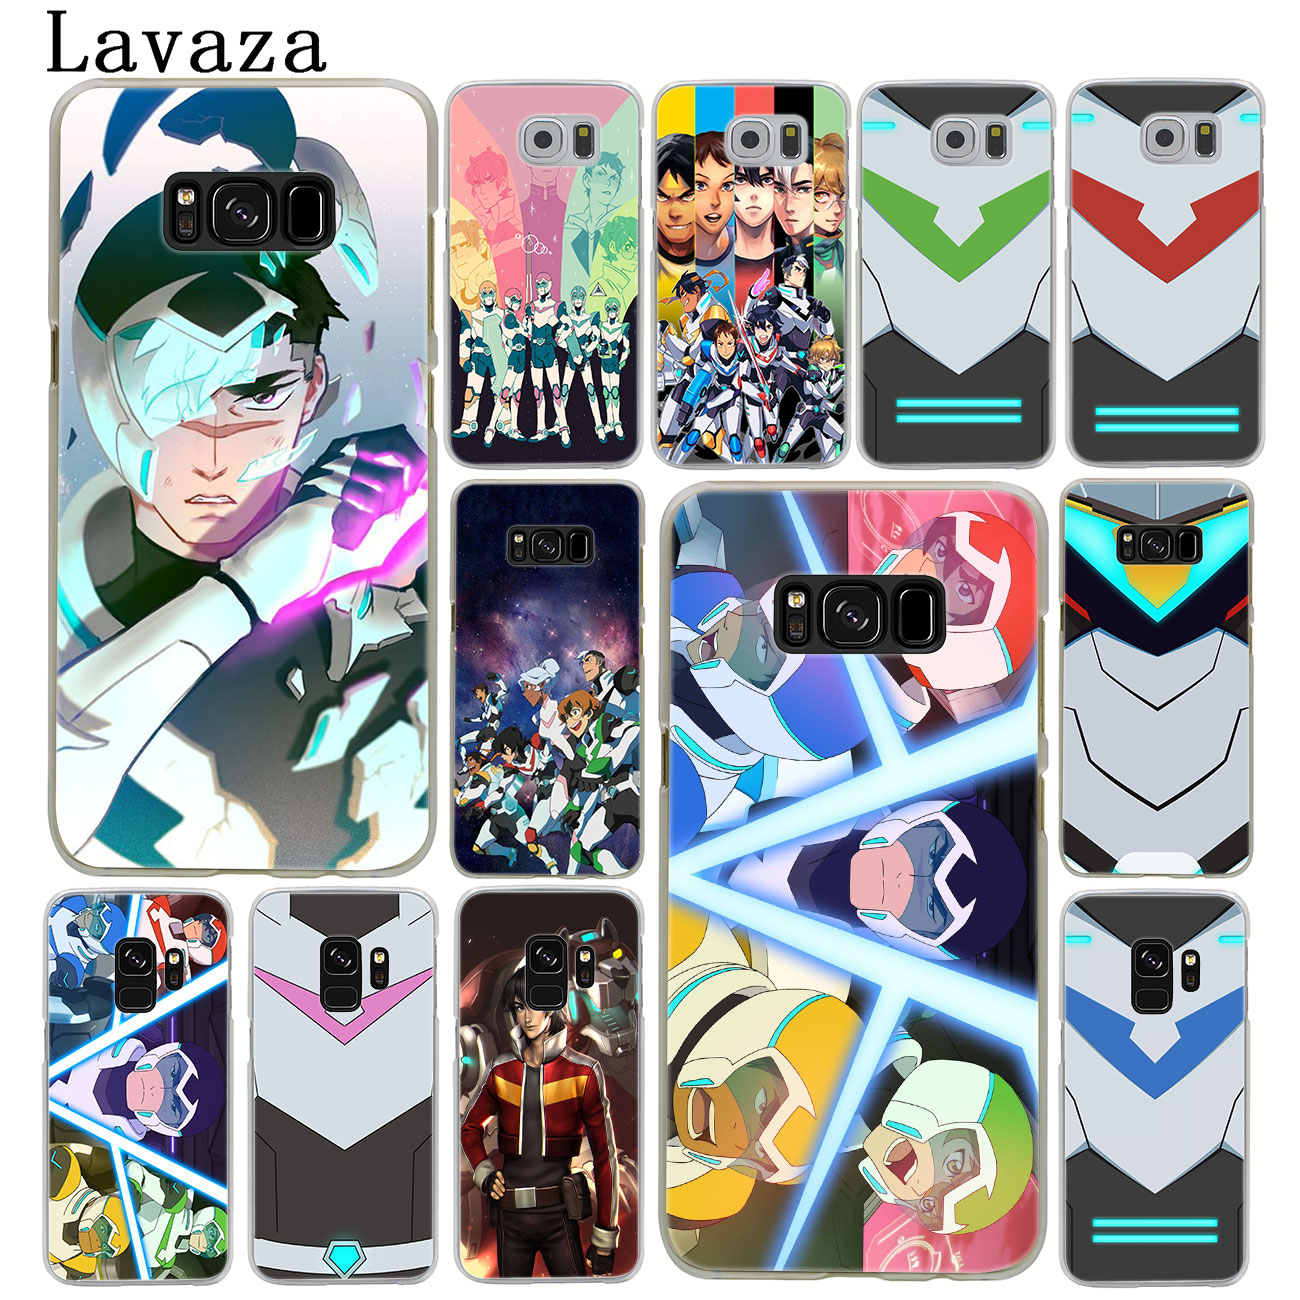 Fitted Cases Search For Flights Silicone Case For Samsung Galaxy S9 S8 S7 S6 Edge S5 S4 S3 Plus Phone Cover Akira Voltron Rainbow Six Siege Yugioh Available In Various Designs And Specifications For Your Selection Cellphones & Telecommunications